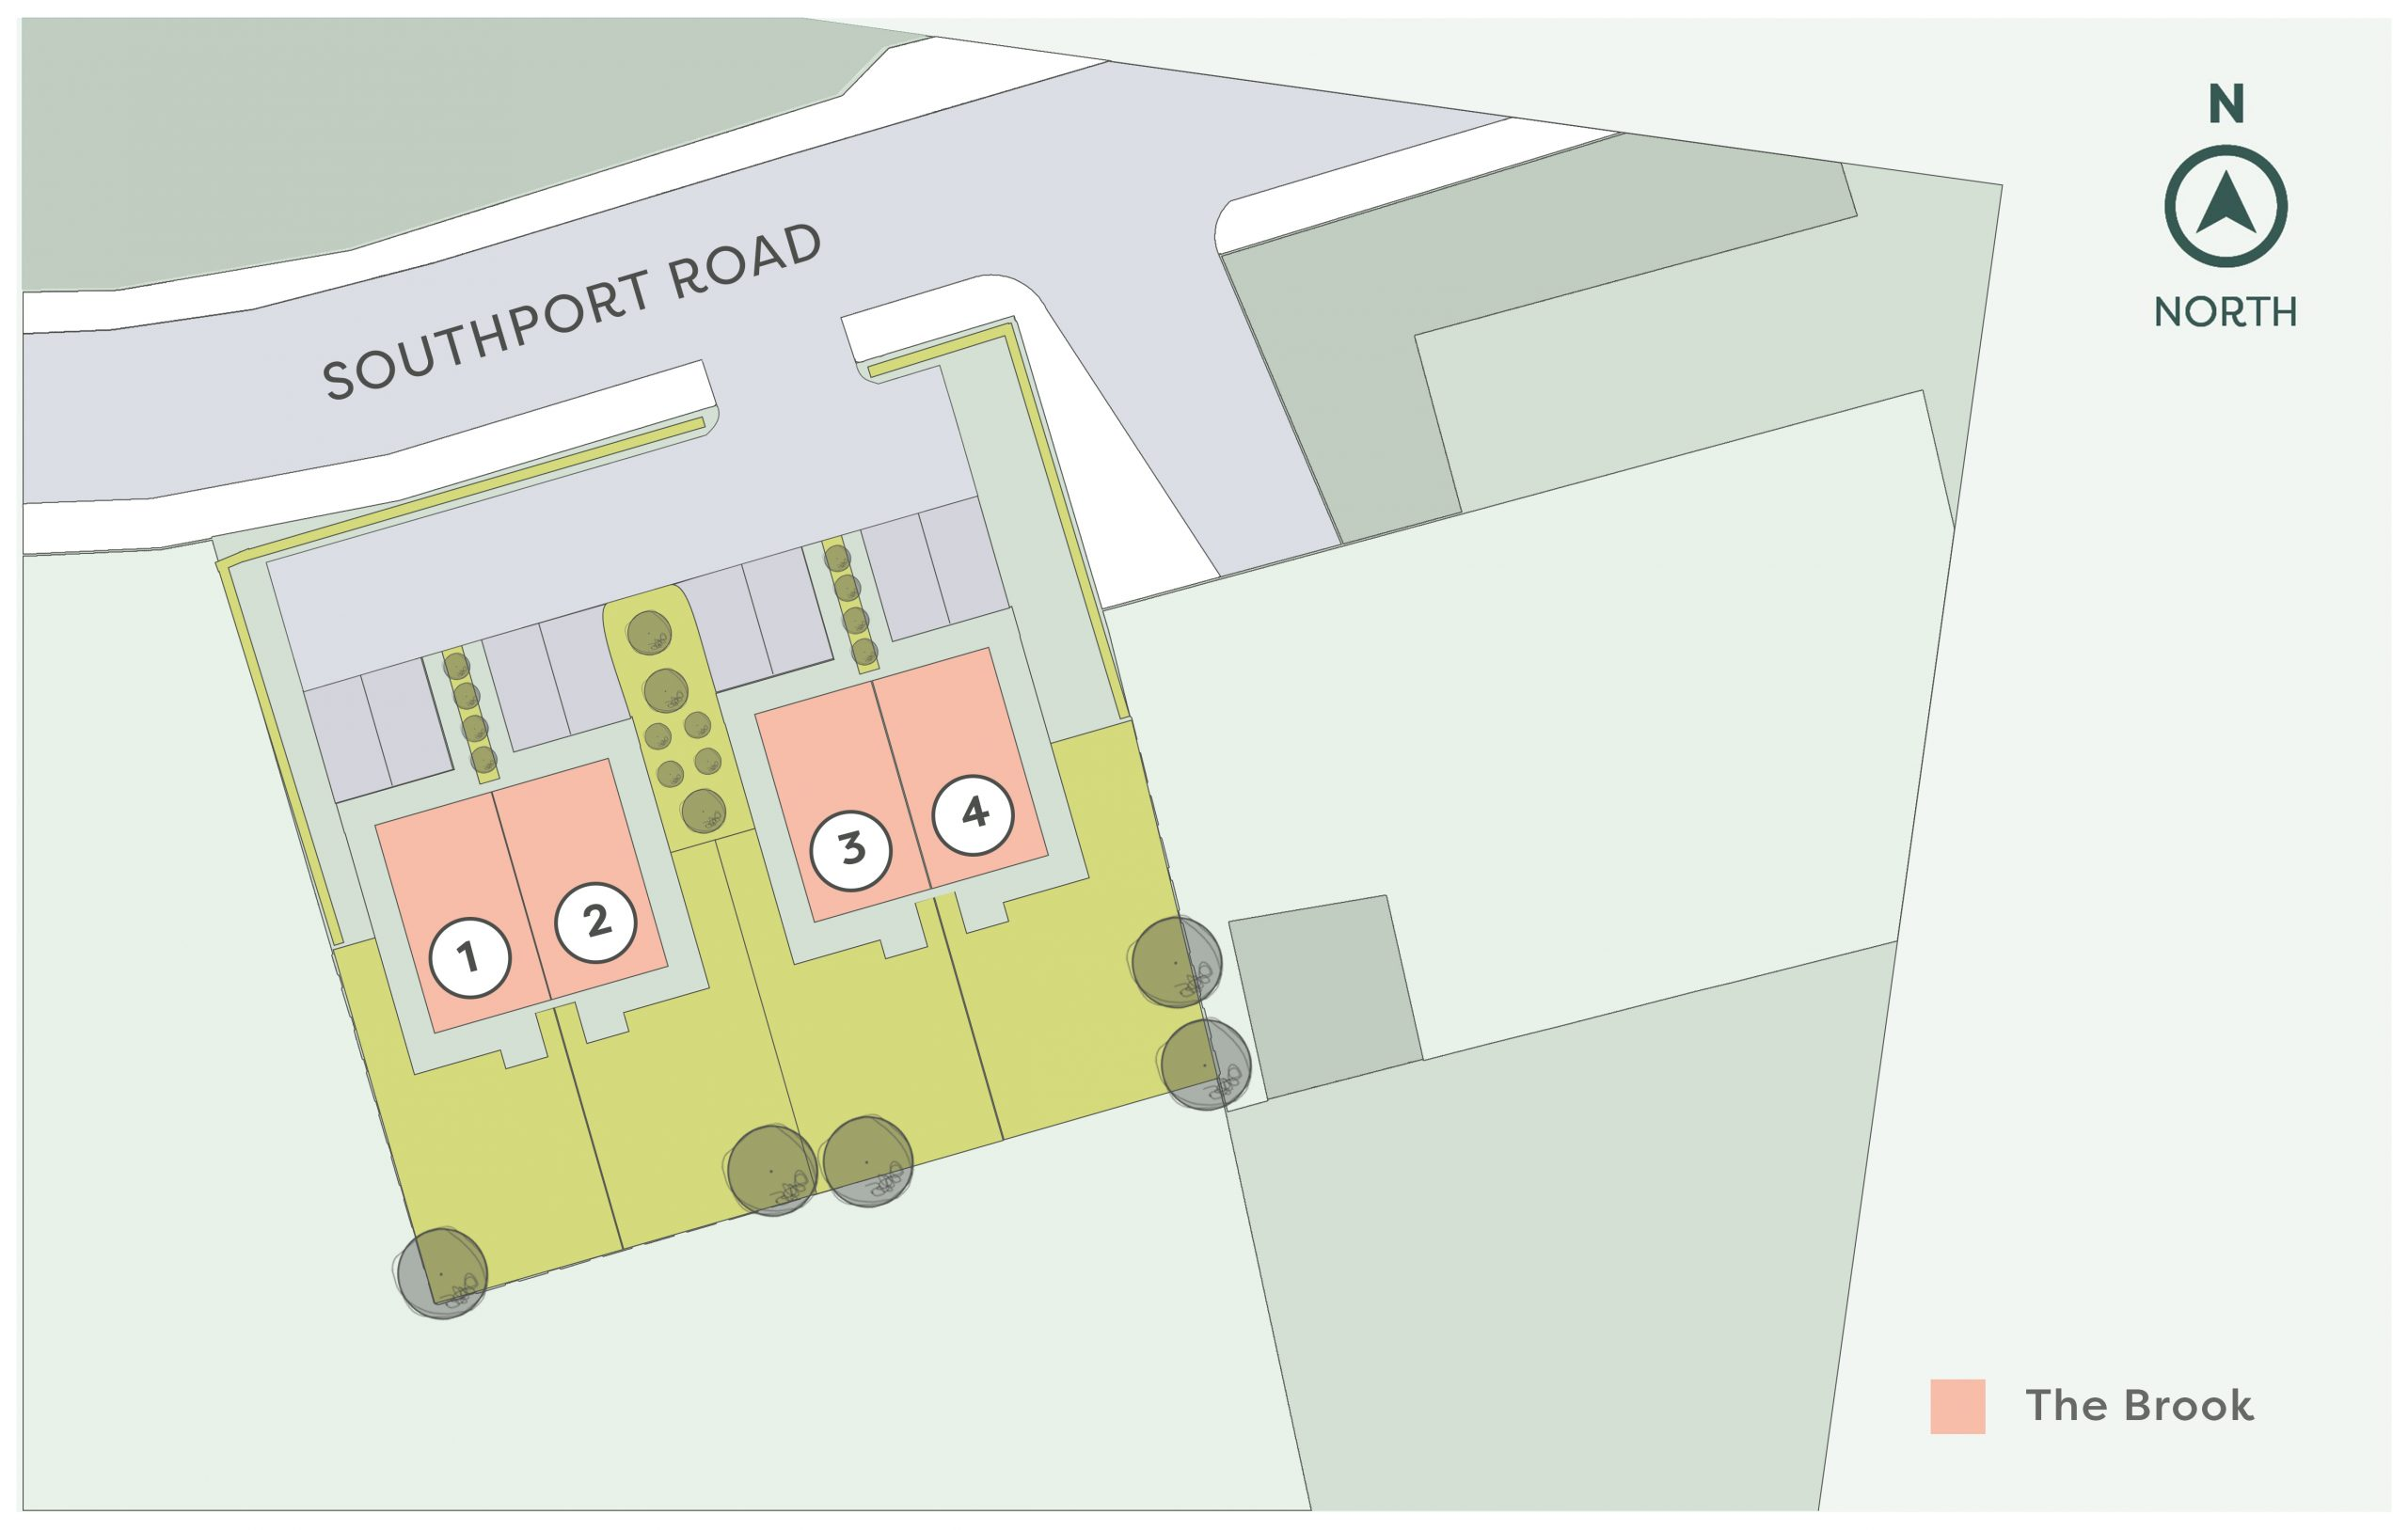 Development siteplan - Contact Onward for an accessible alternative